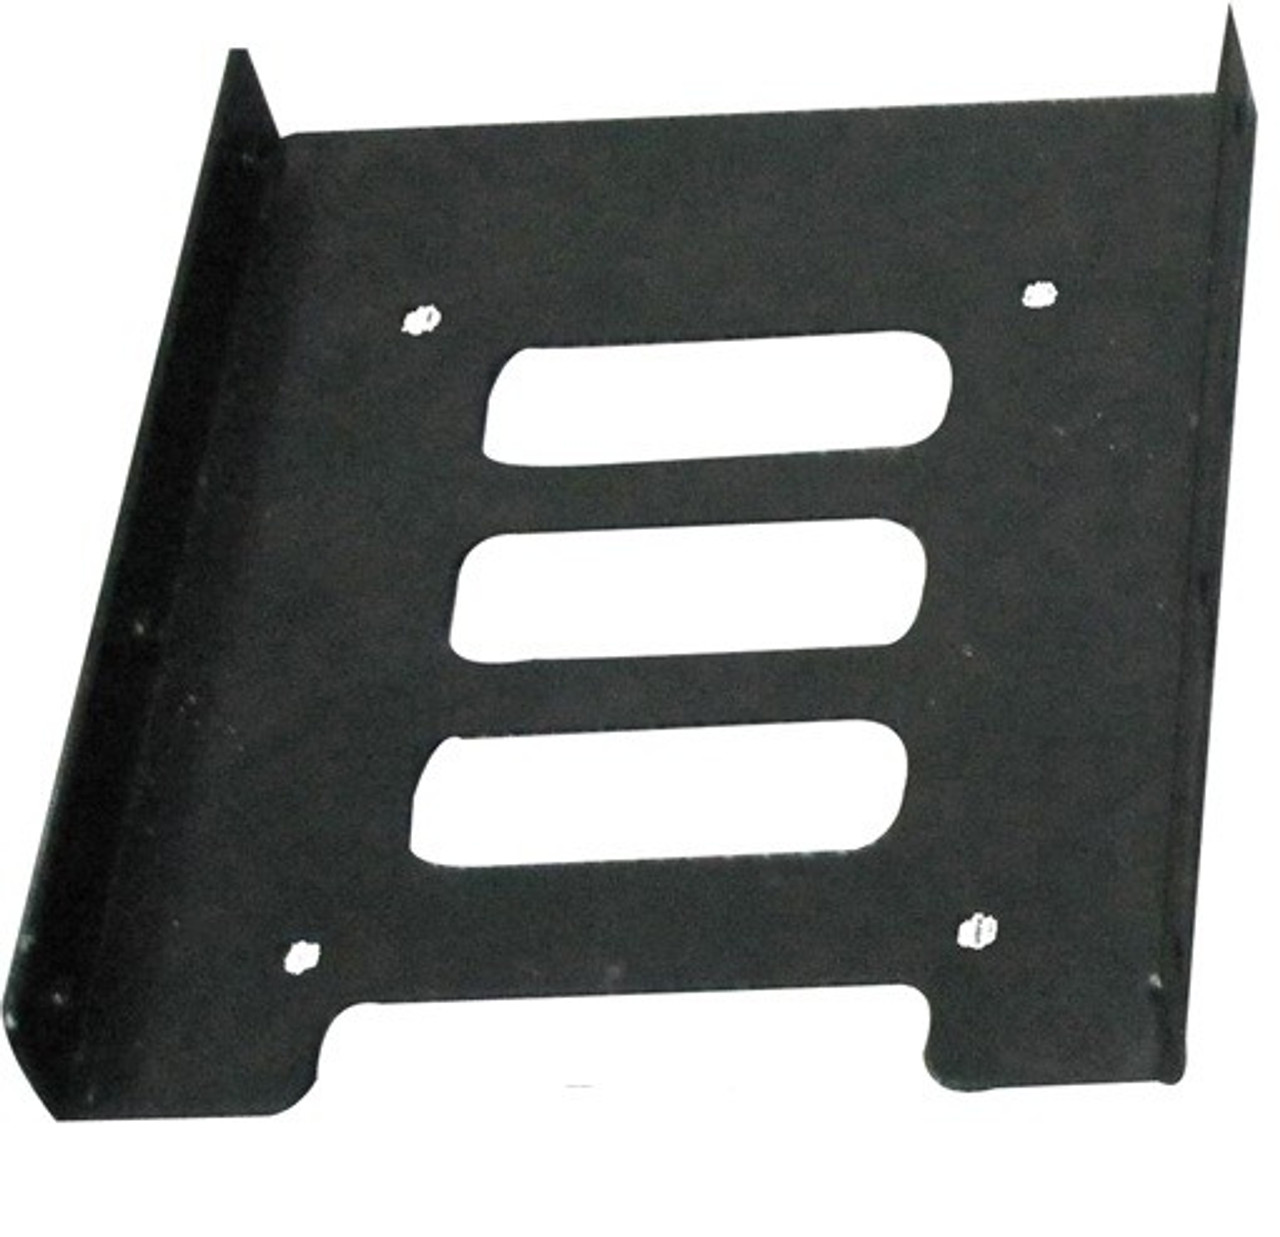 Product image for 2.5in To 3.5in HDD Mounting Kit for SSD HDD - Metal | CX Computer Superstore